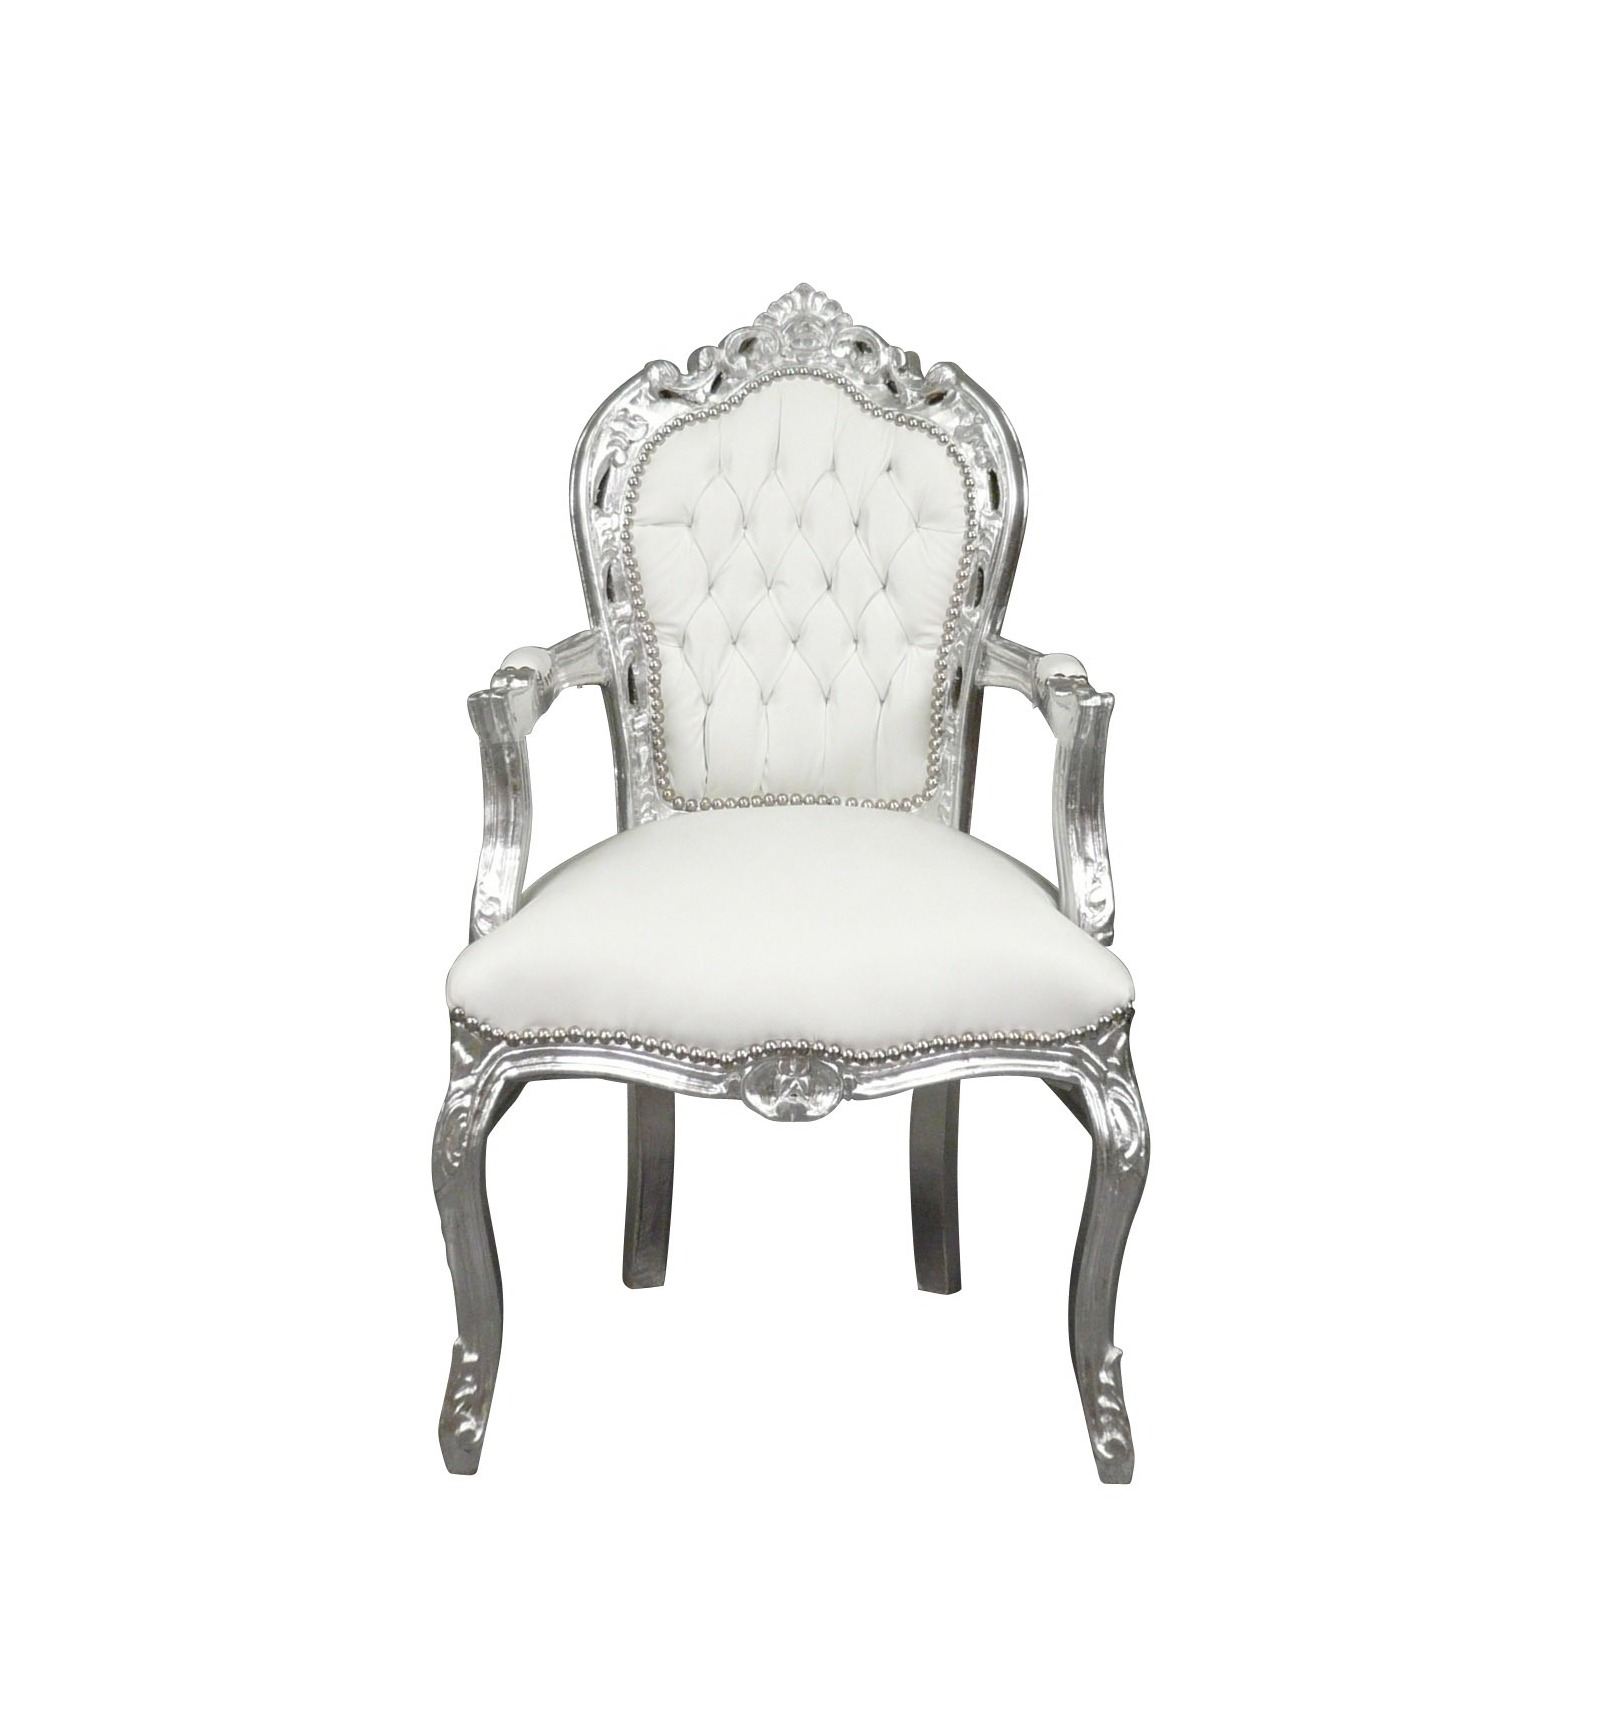 fauteuil baroque blanc et argent ameublement rococo. Black Bedroom Furniture Sets. Home Design Ideas